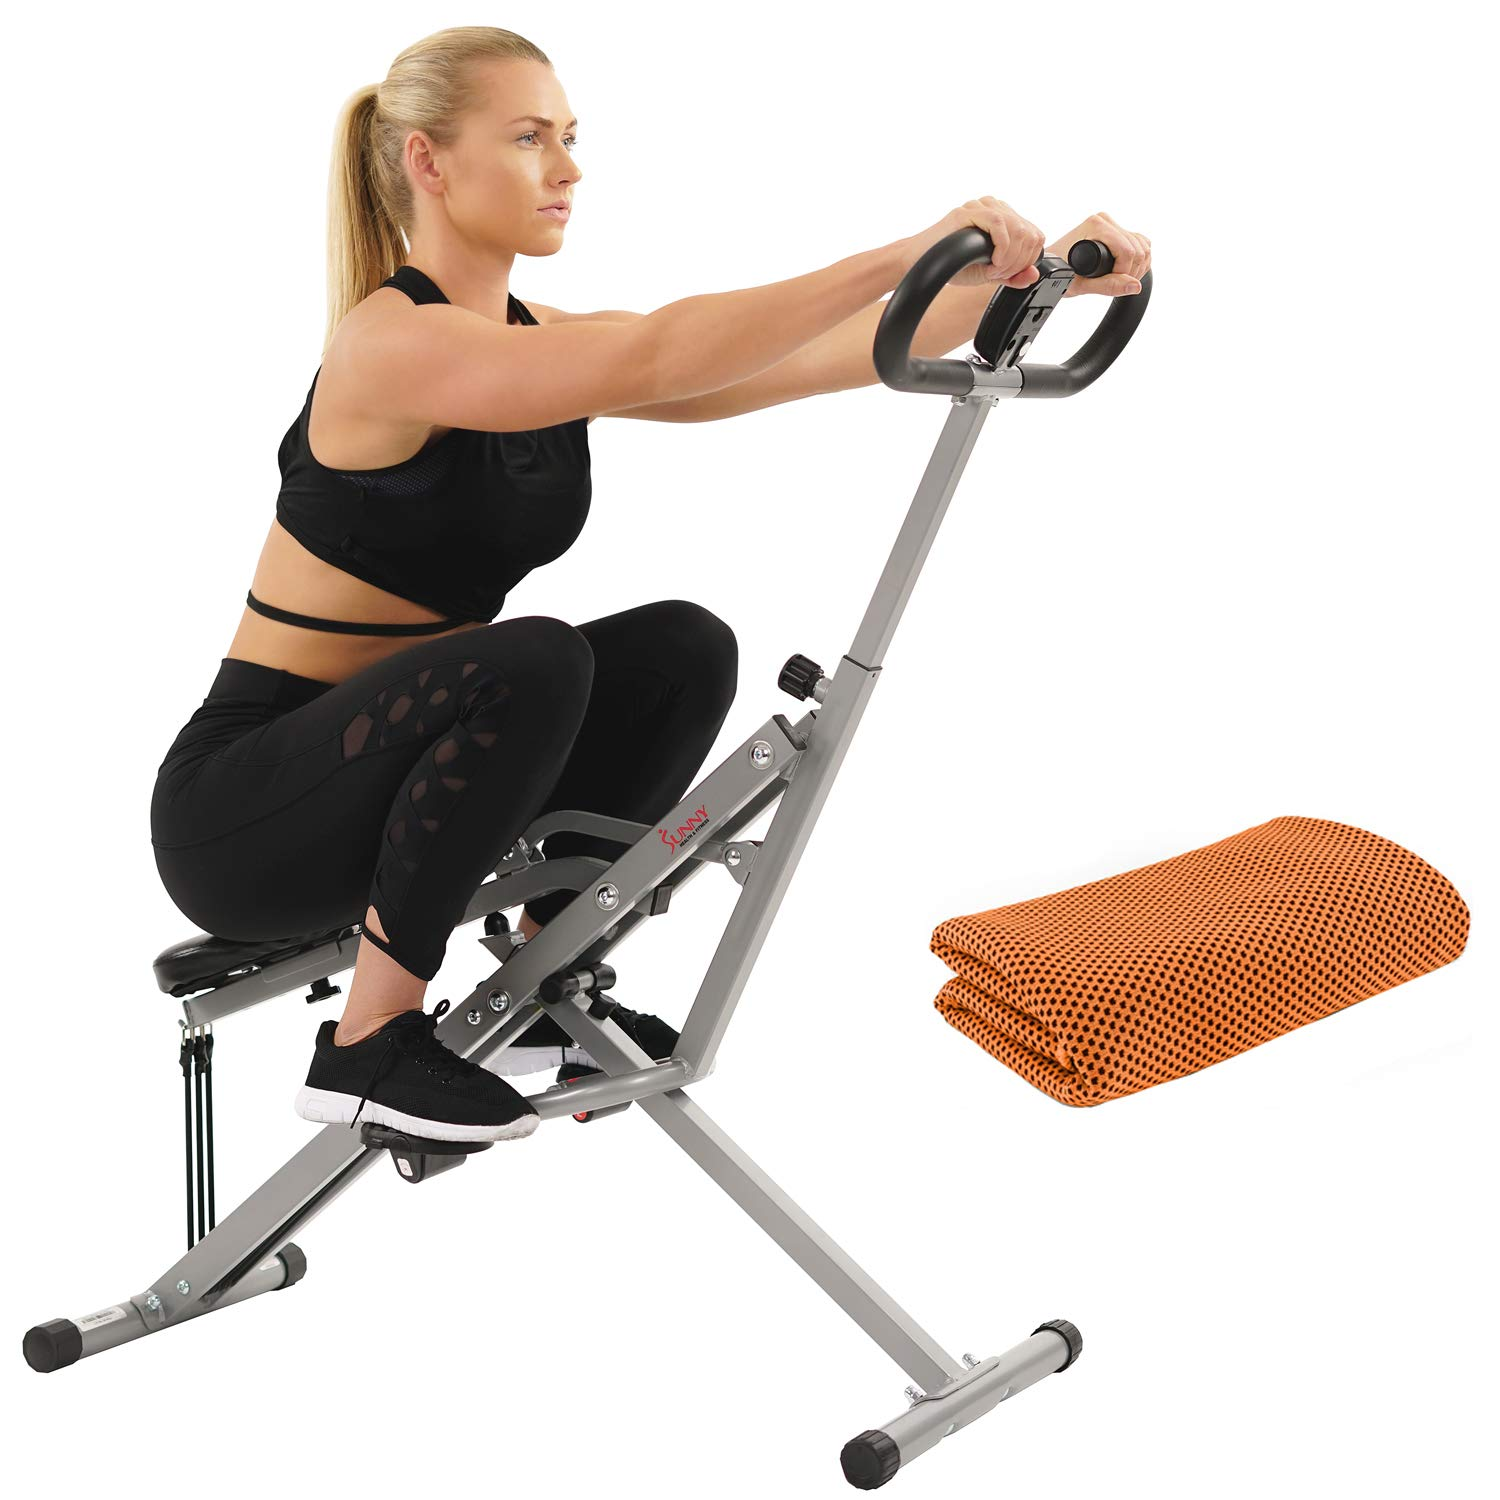 Sunny Health and Fitness Upright Squat Assist Row-N-Ride Trainer for Squat Exercise and Glutes Workout with Workout Cooling Towel by Sunny